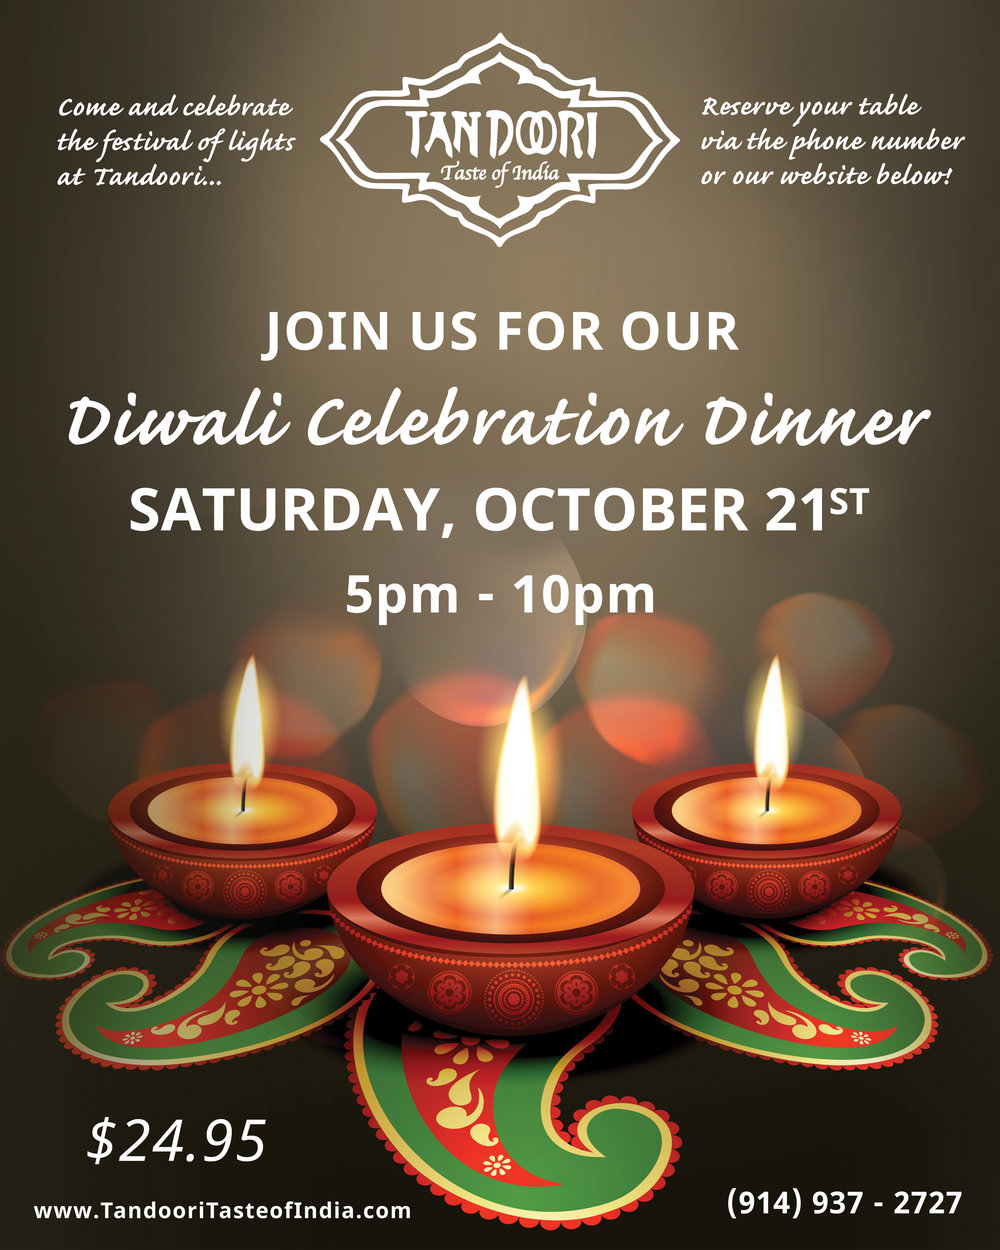 Diwali Dinner Celebration On Saturday 10/21/17 — Tandoori for Deepavali 2017 Celebration  66plt